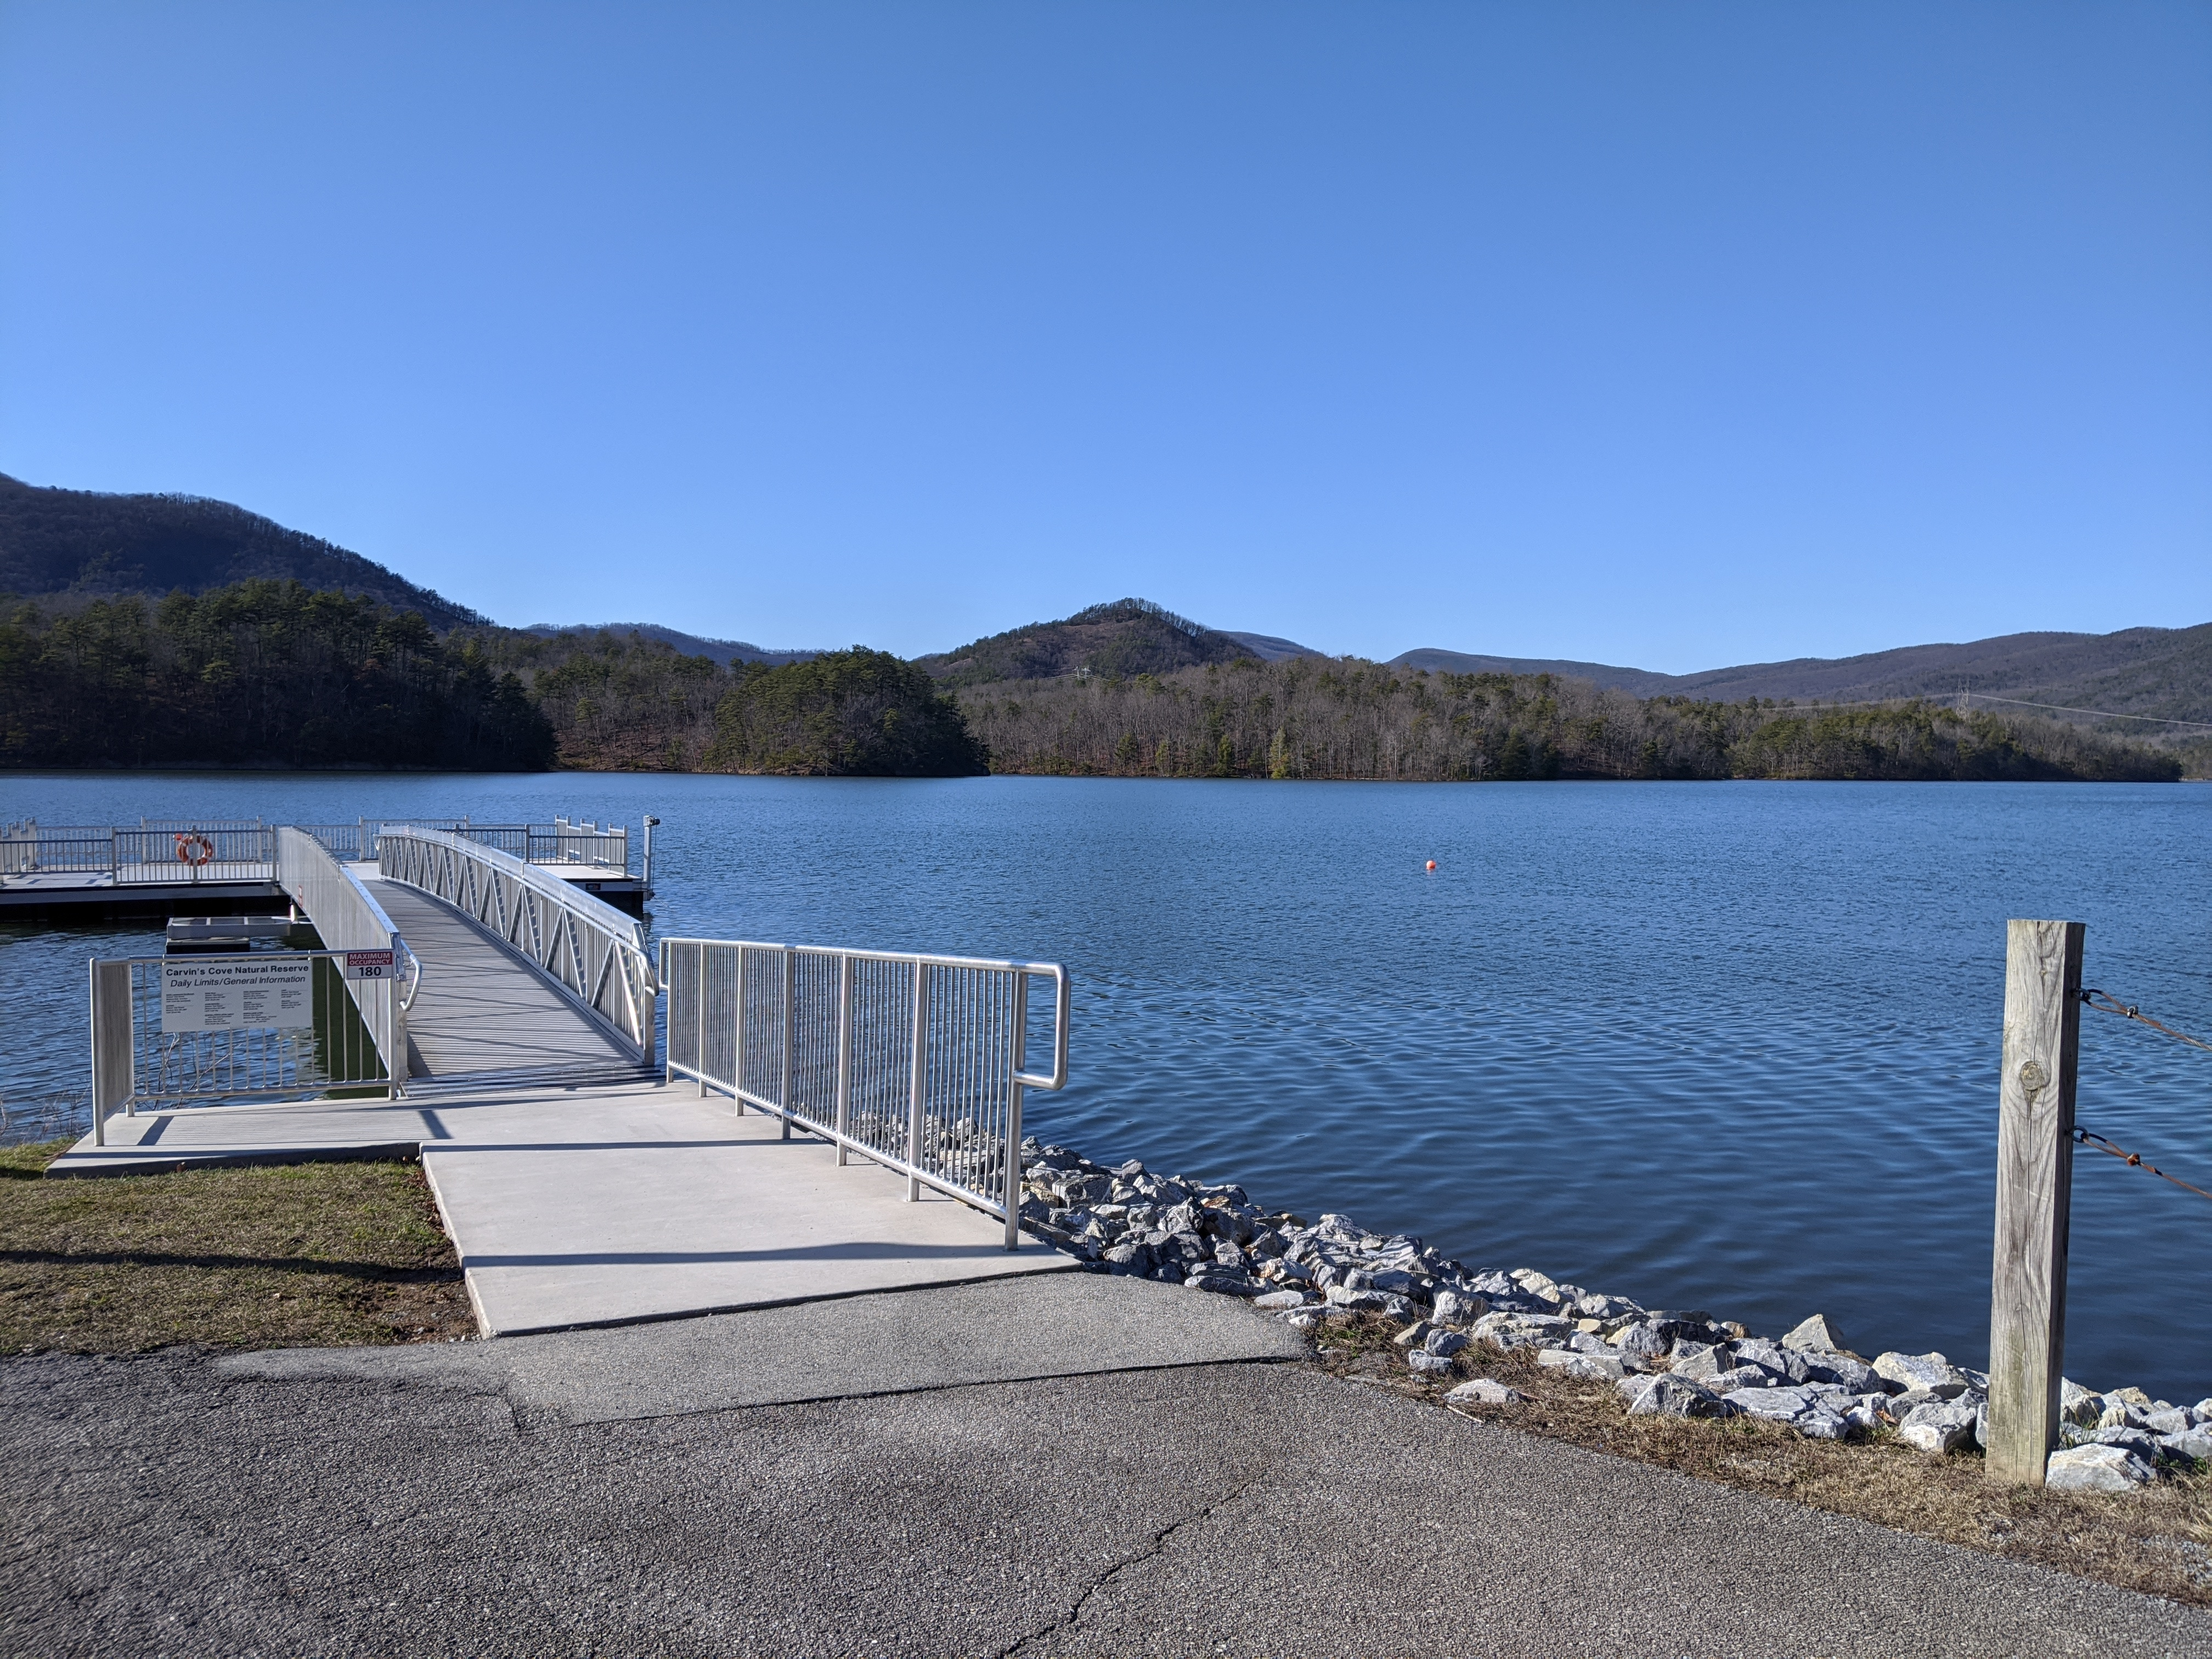 Carvins Cove features an 80-foot long floating ADA accessible fishing pier.  A current VA fishing license is required.  Daily and annual entrance passes can be purchased in-person at the Carvins Cove Boat Landing on Reservoir Road.